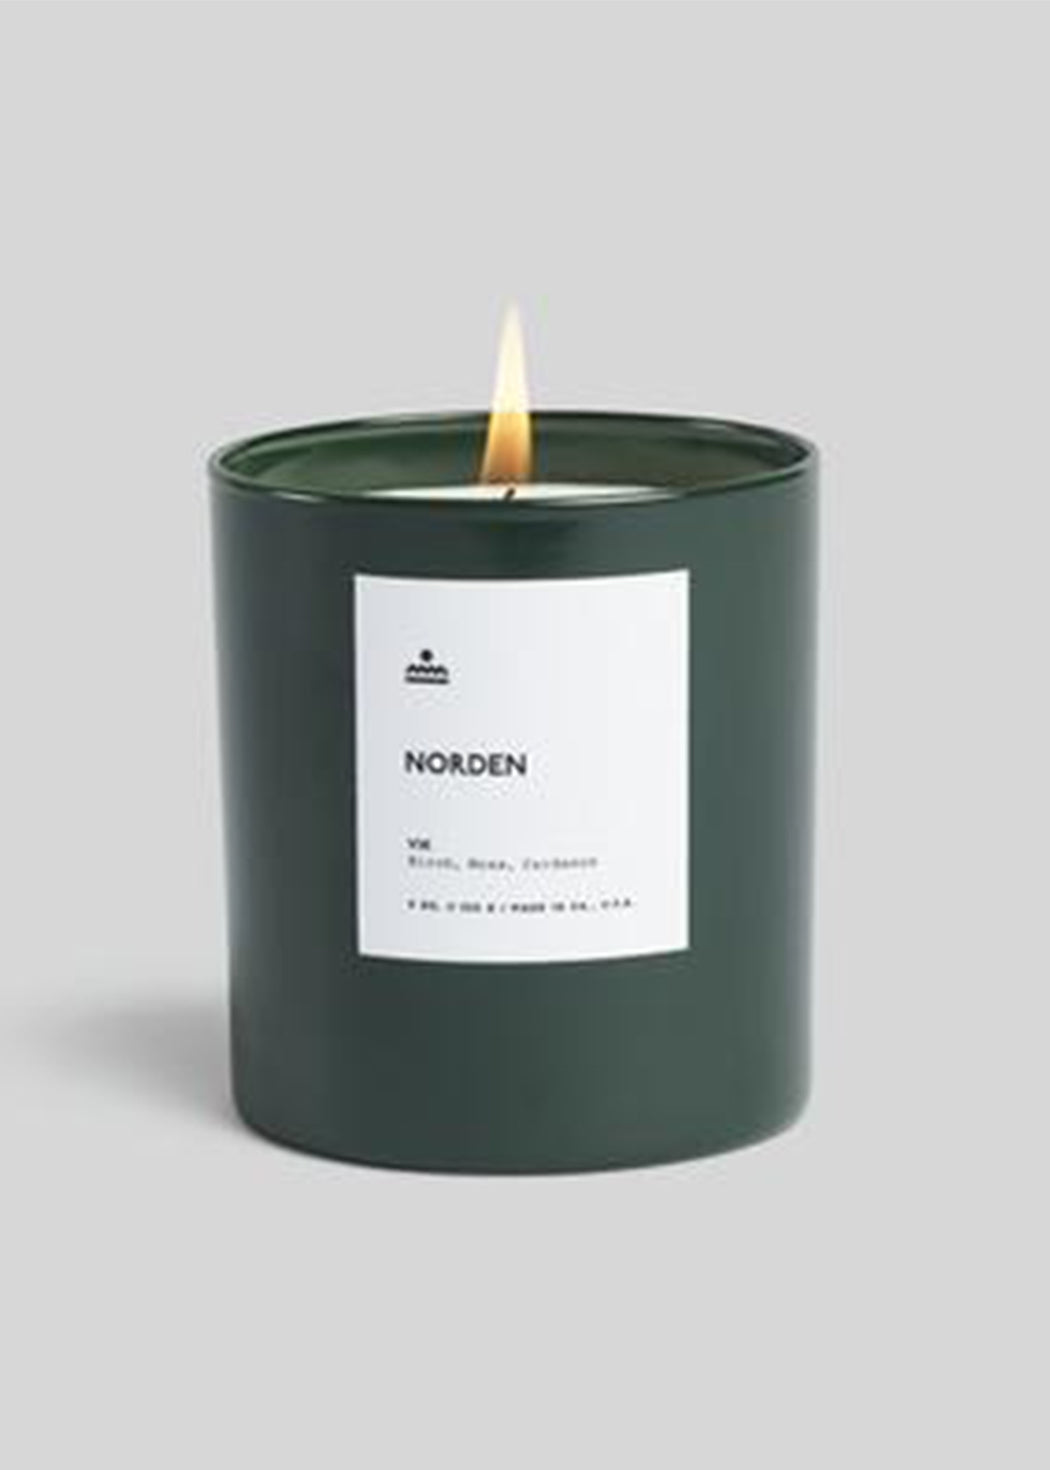 Norden VIK - Glass Candle